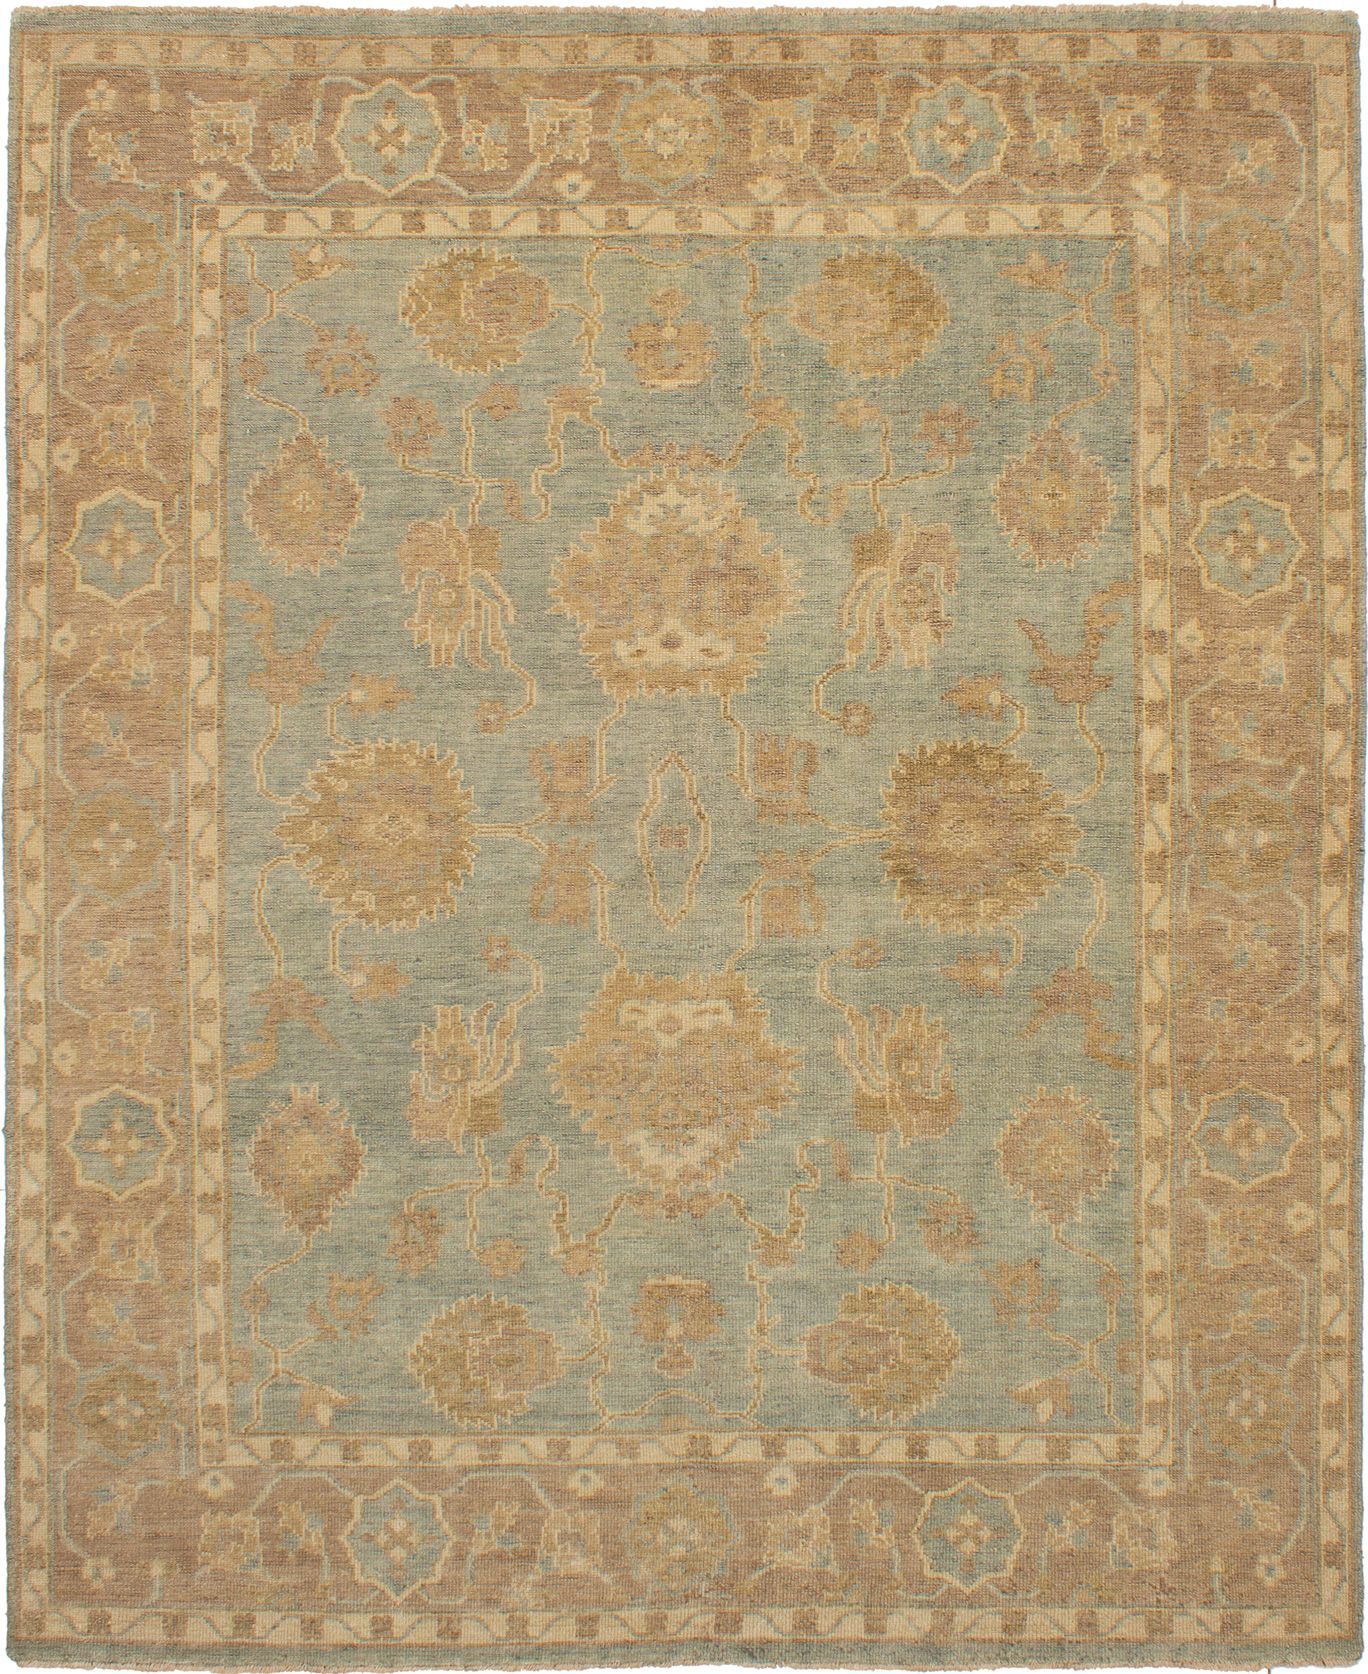 """Hand-knotted Beaumont Light Denim Blue Wool Rug 8'0"""" x 9'10"""" Size: 8'0"""" x 9'10"""""""